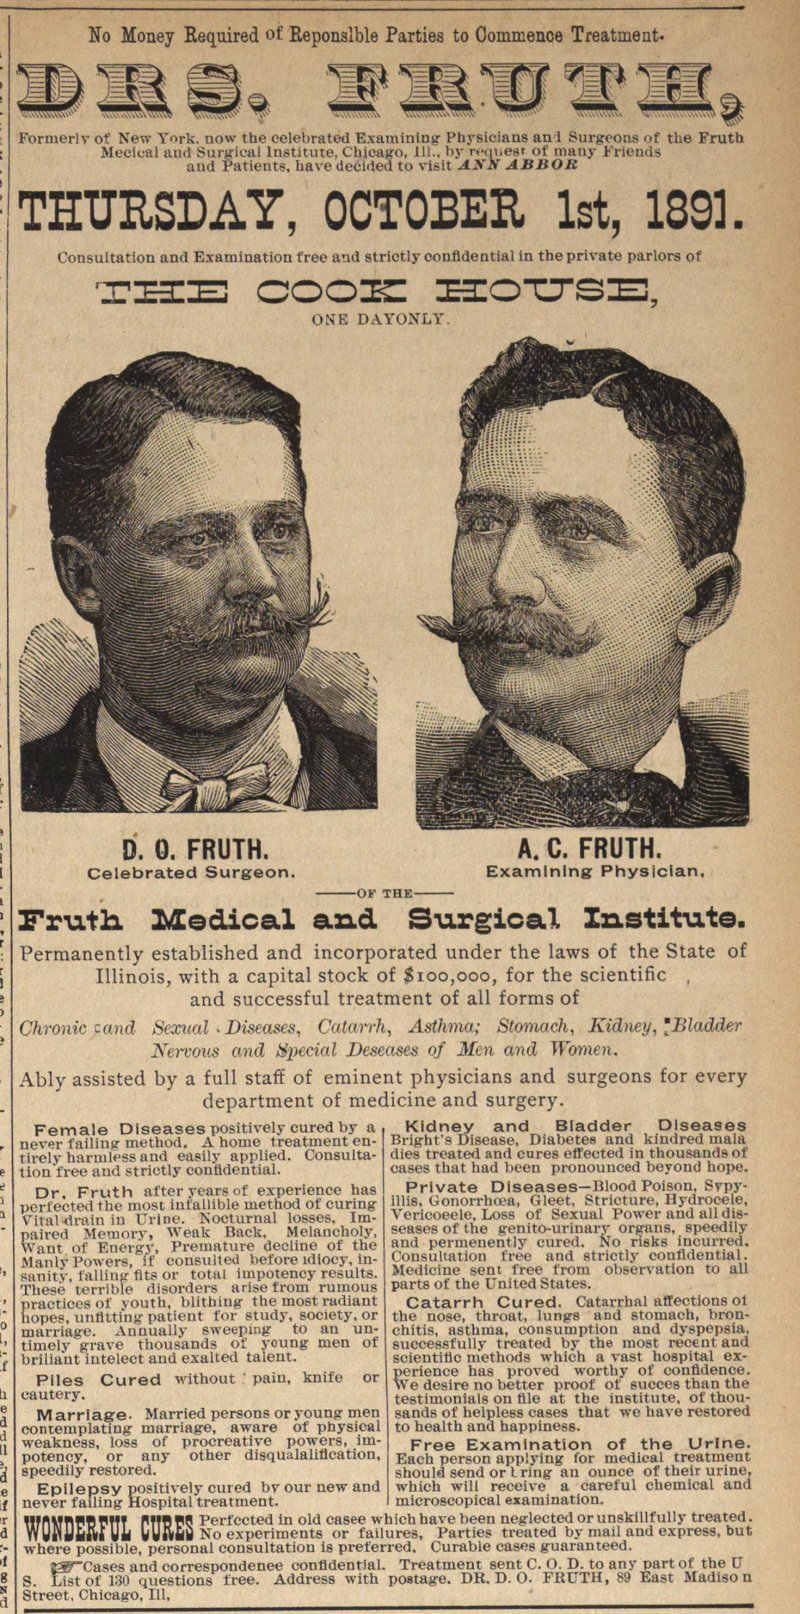 Drs. Fruth image